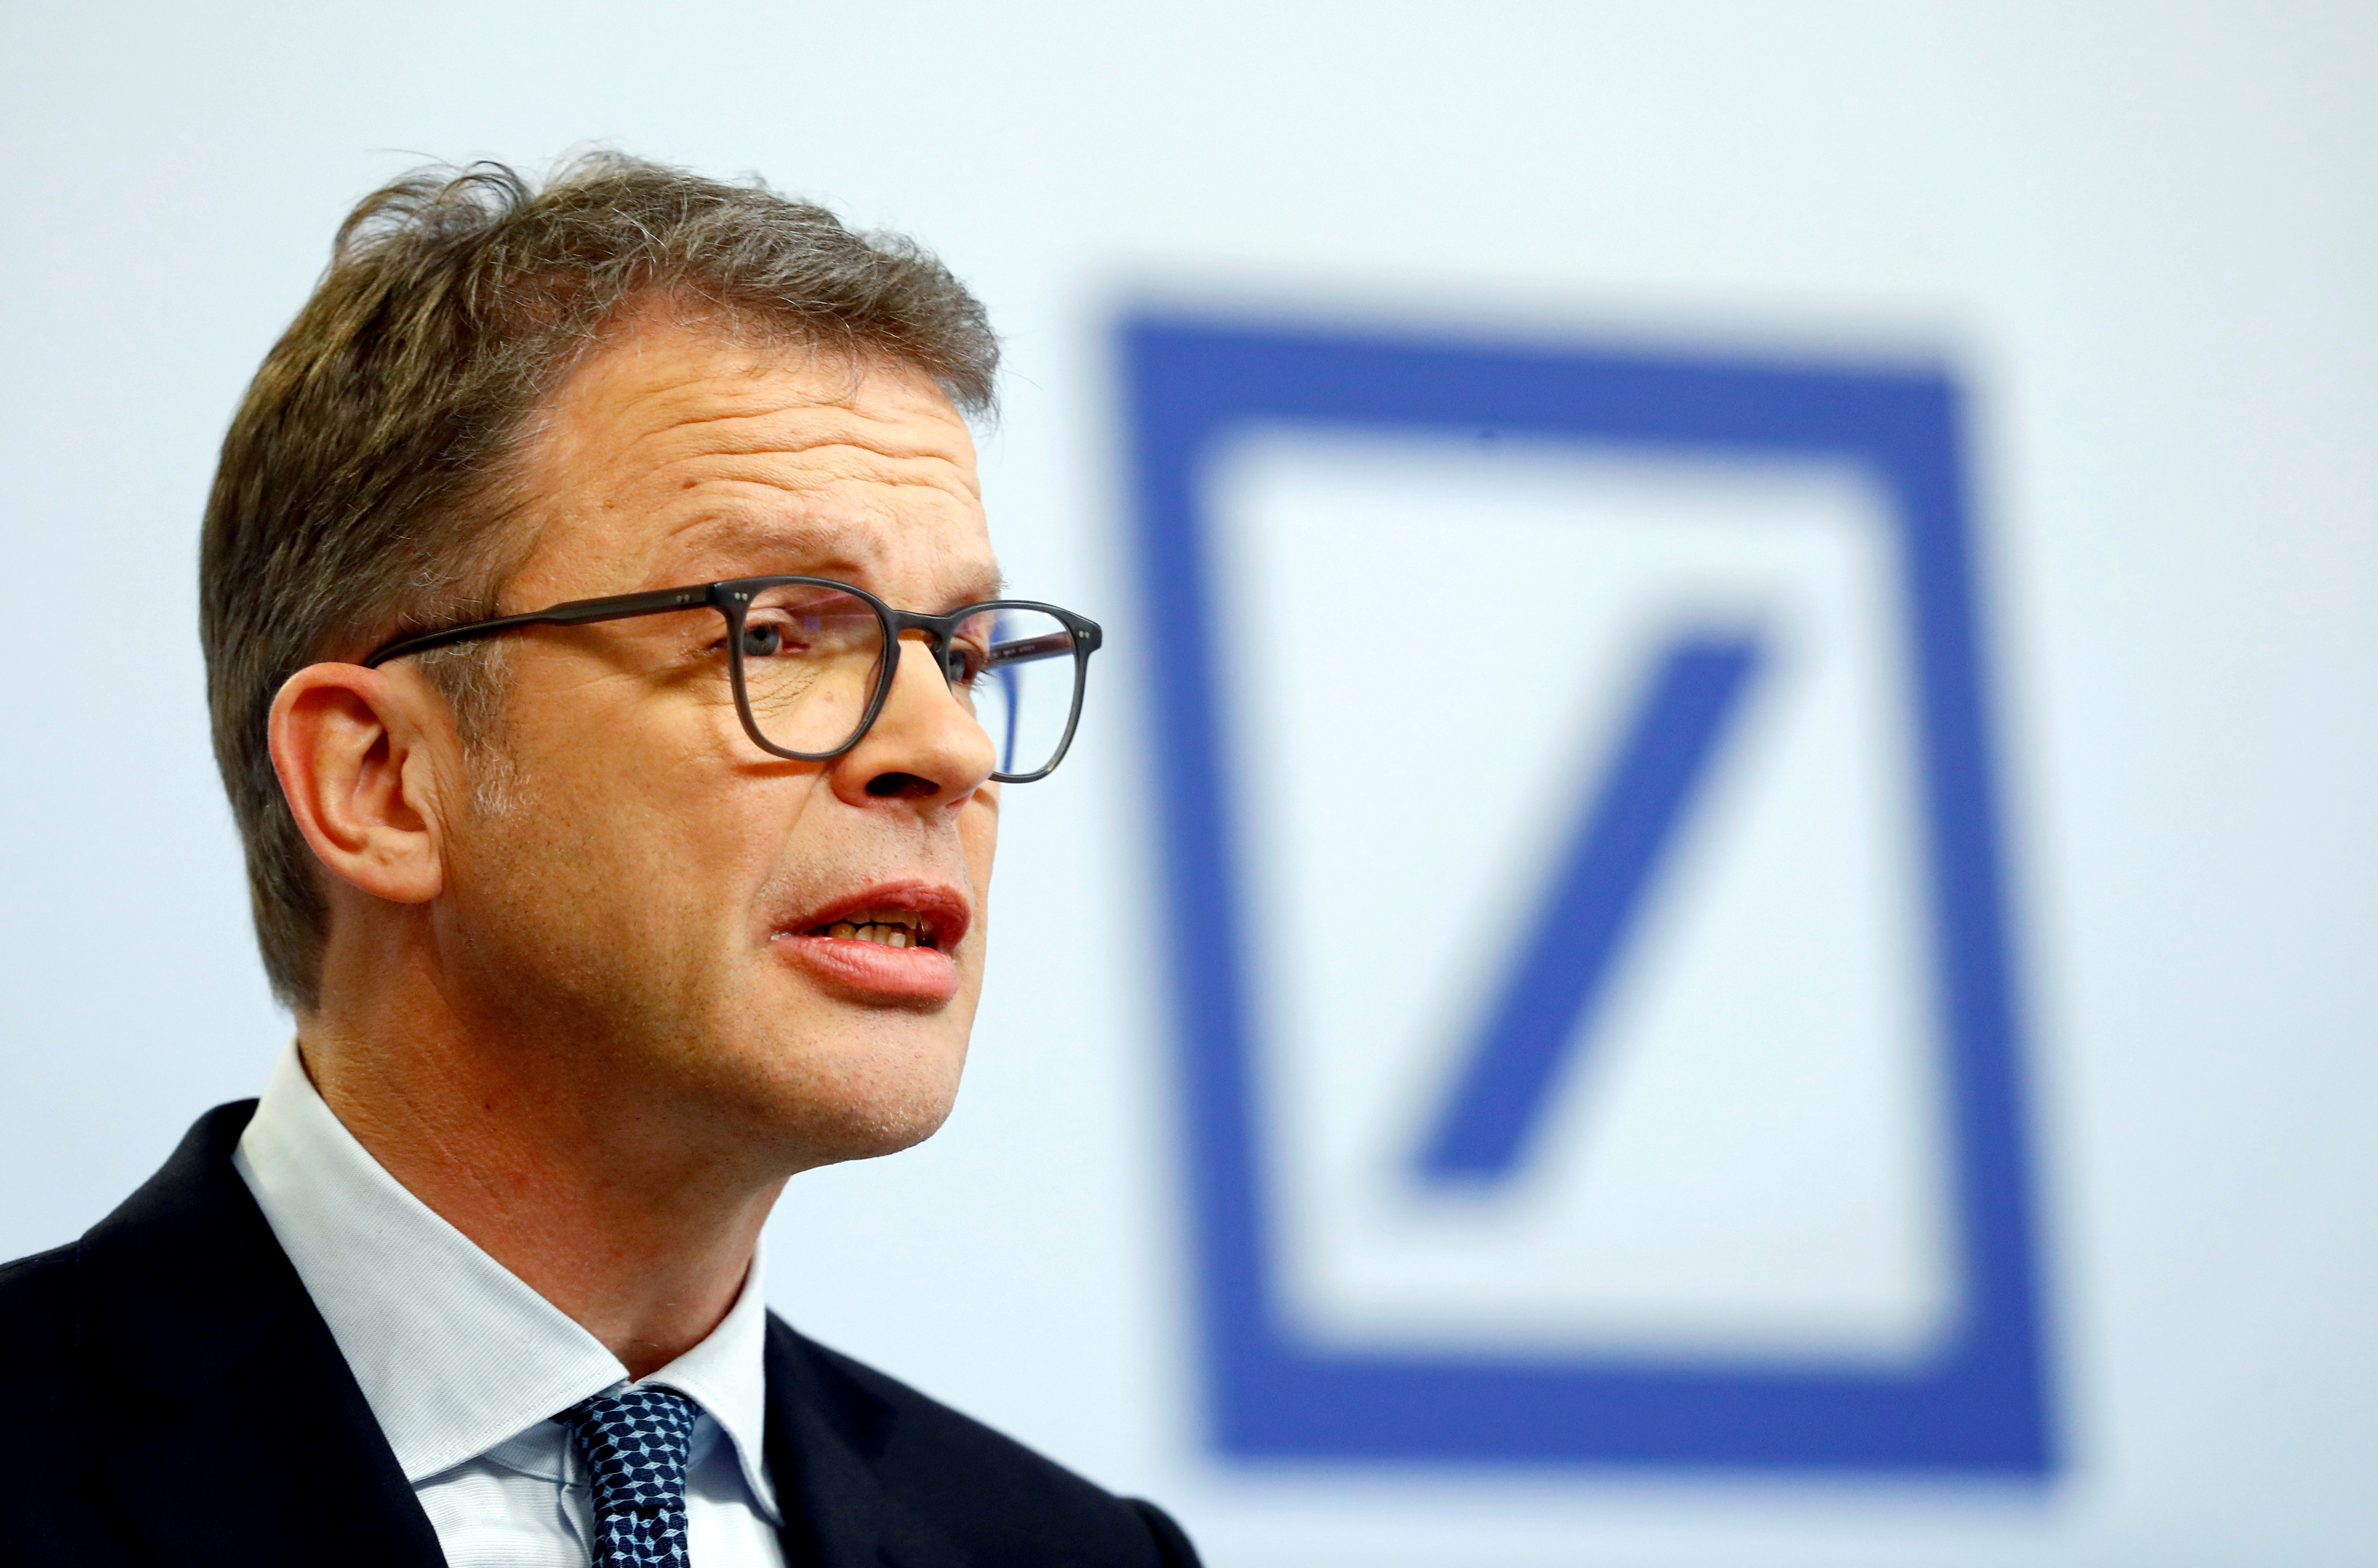 Christian Sewing, CEO of Deutsche Bank AG in Frankfurt, Germany January 30, 2020. REUTERS/Ralph Orlowski